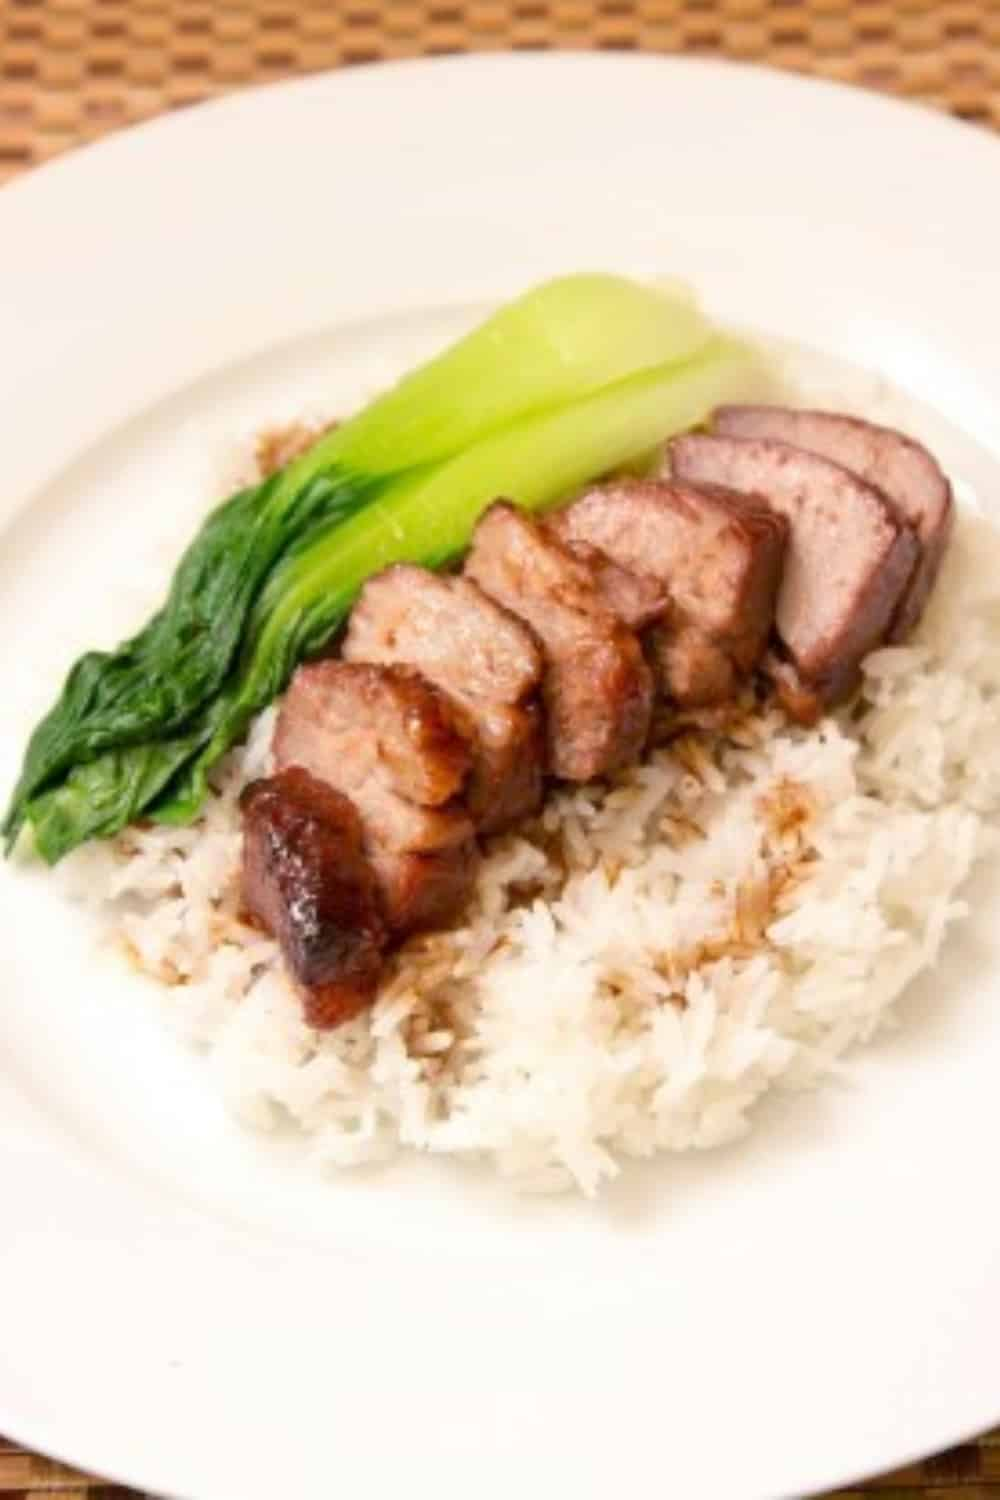 Hong Kong Street Food Red Barbecued Pork on Rice